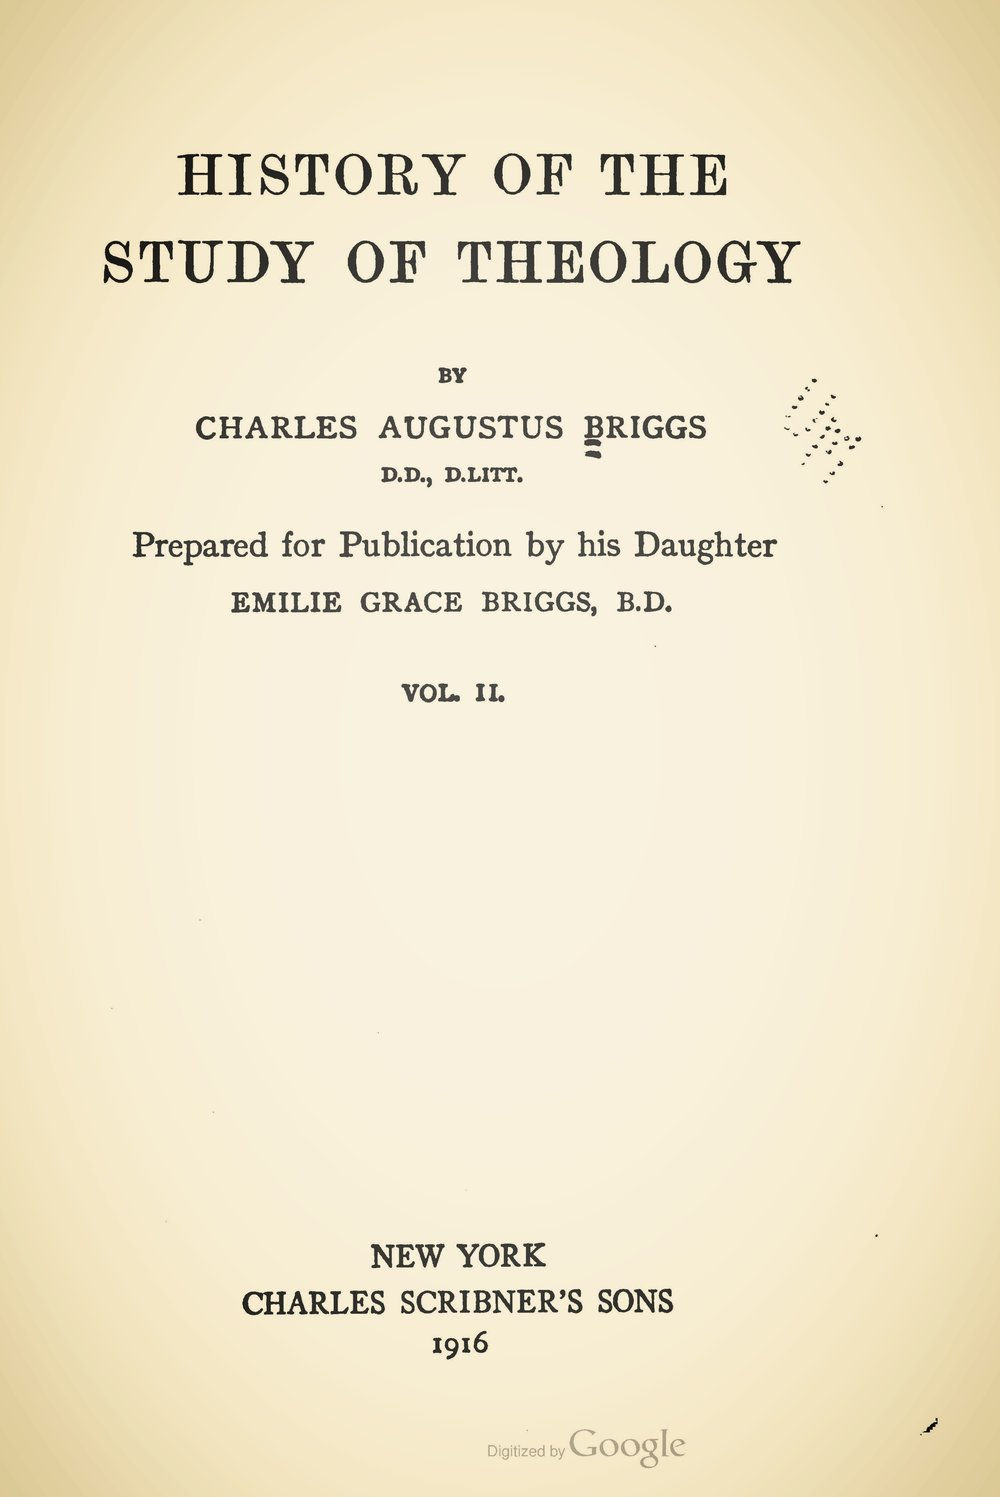 Briggs, Charles Augustus, History of the Study of Theology Vol 2 Title Page.jpg